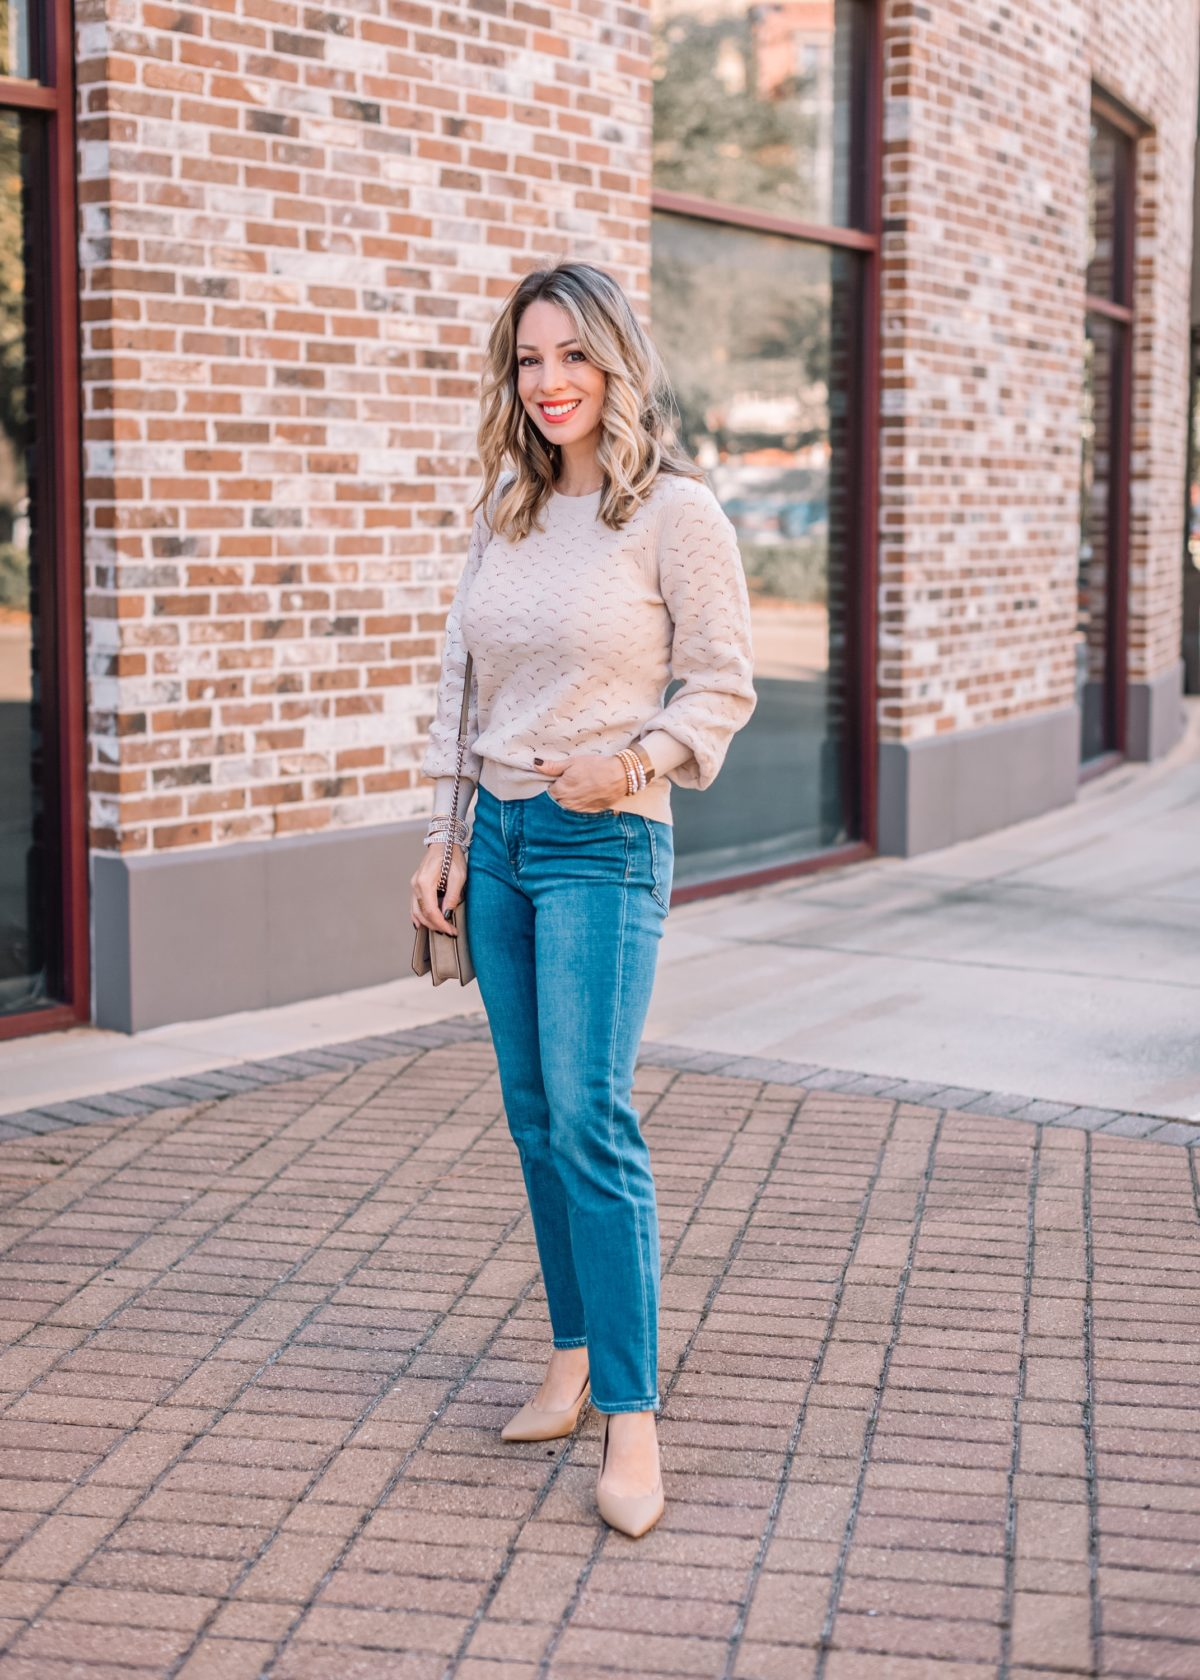 Express Fashion, Ponitnelle Sweater, Jeans, Nude Heels